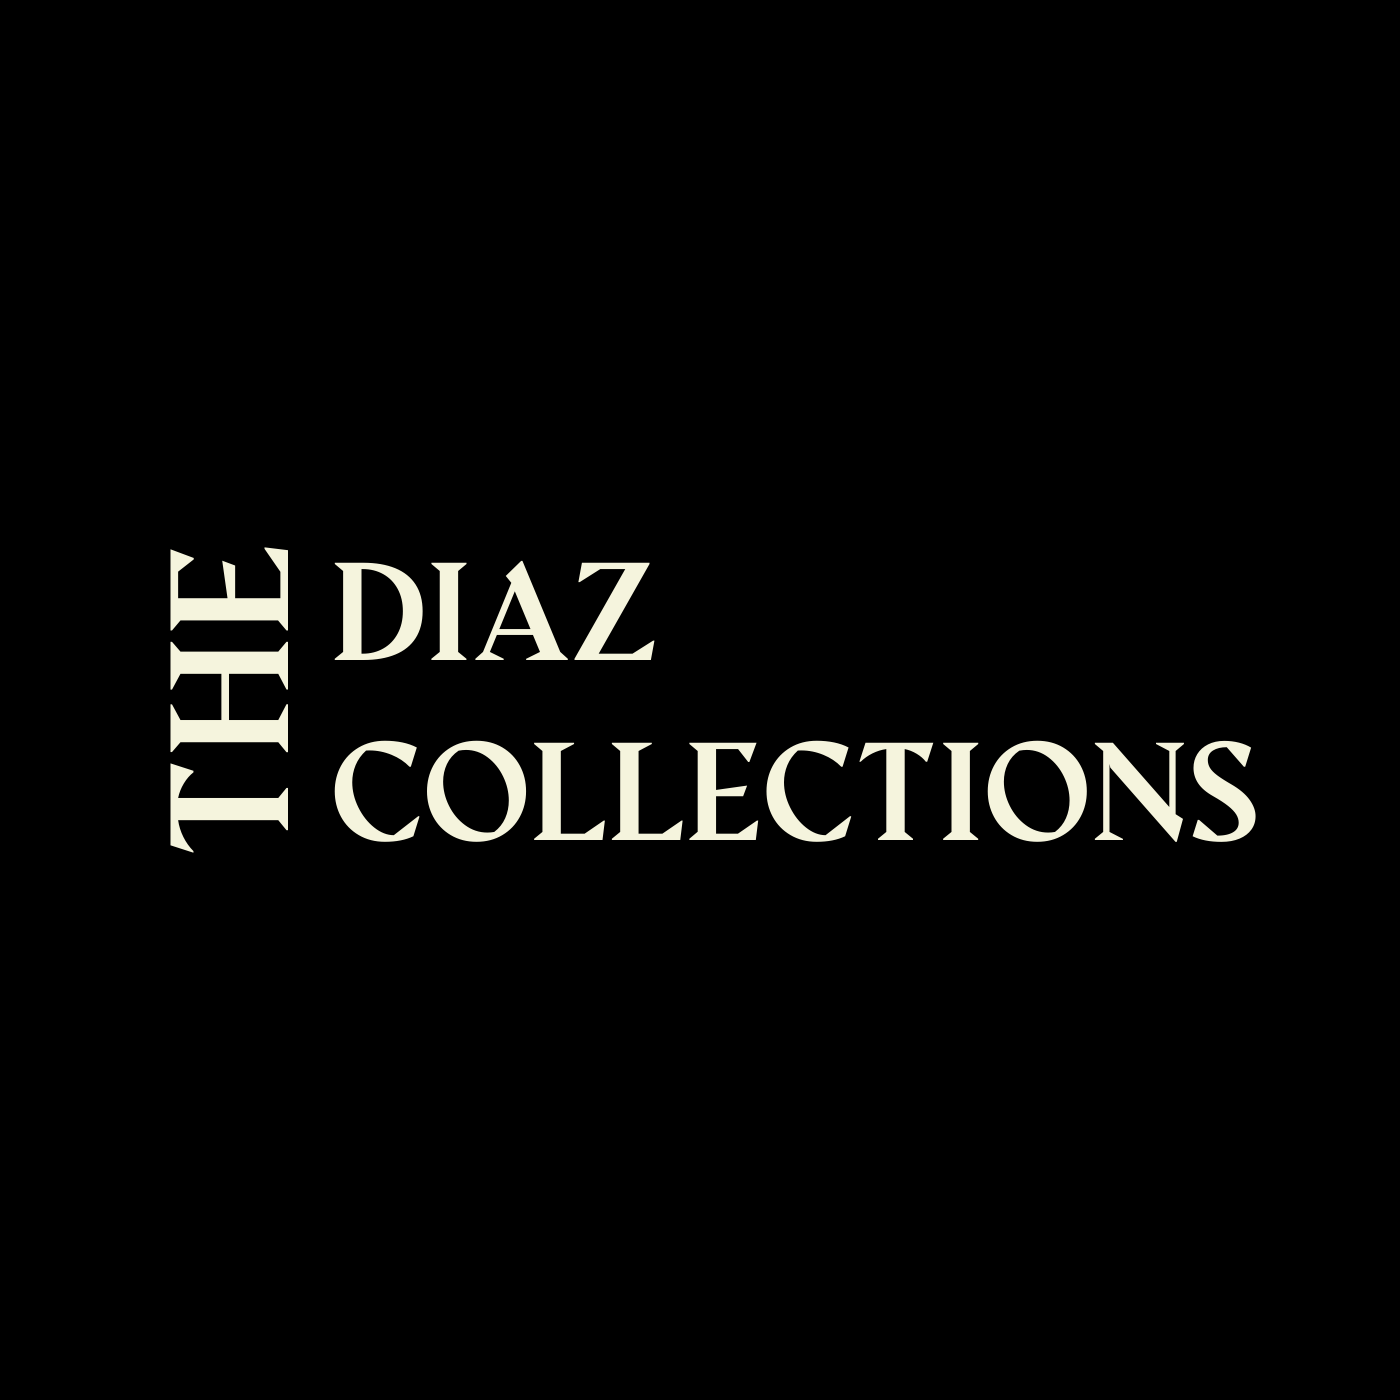 The Diaz Collections